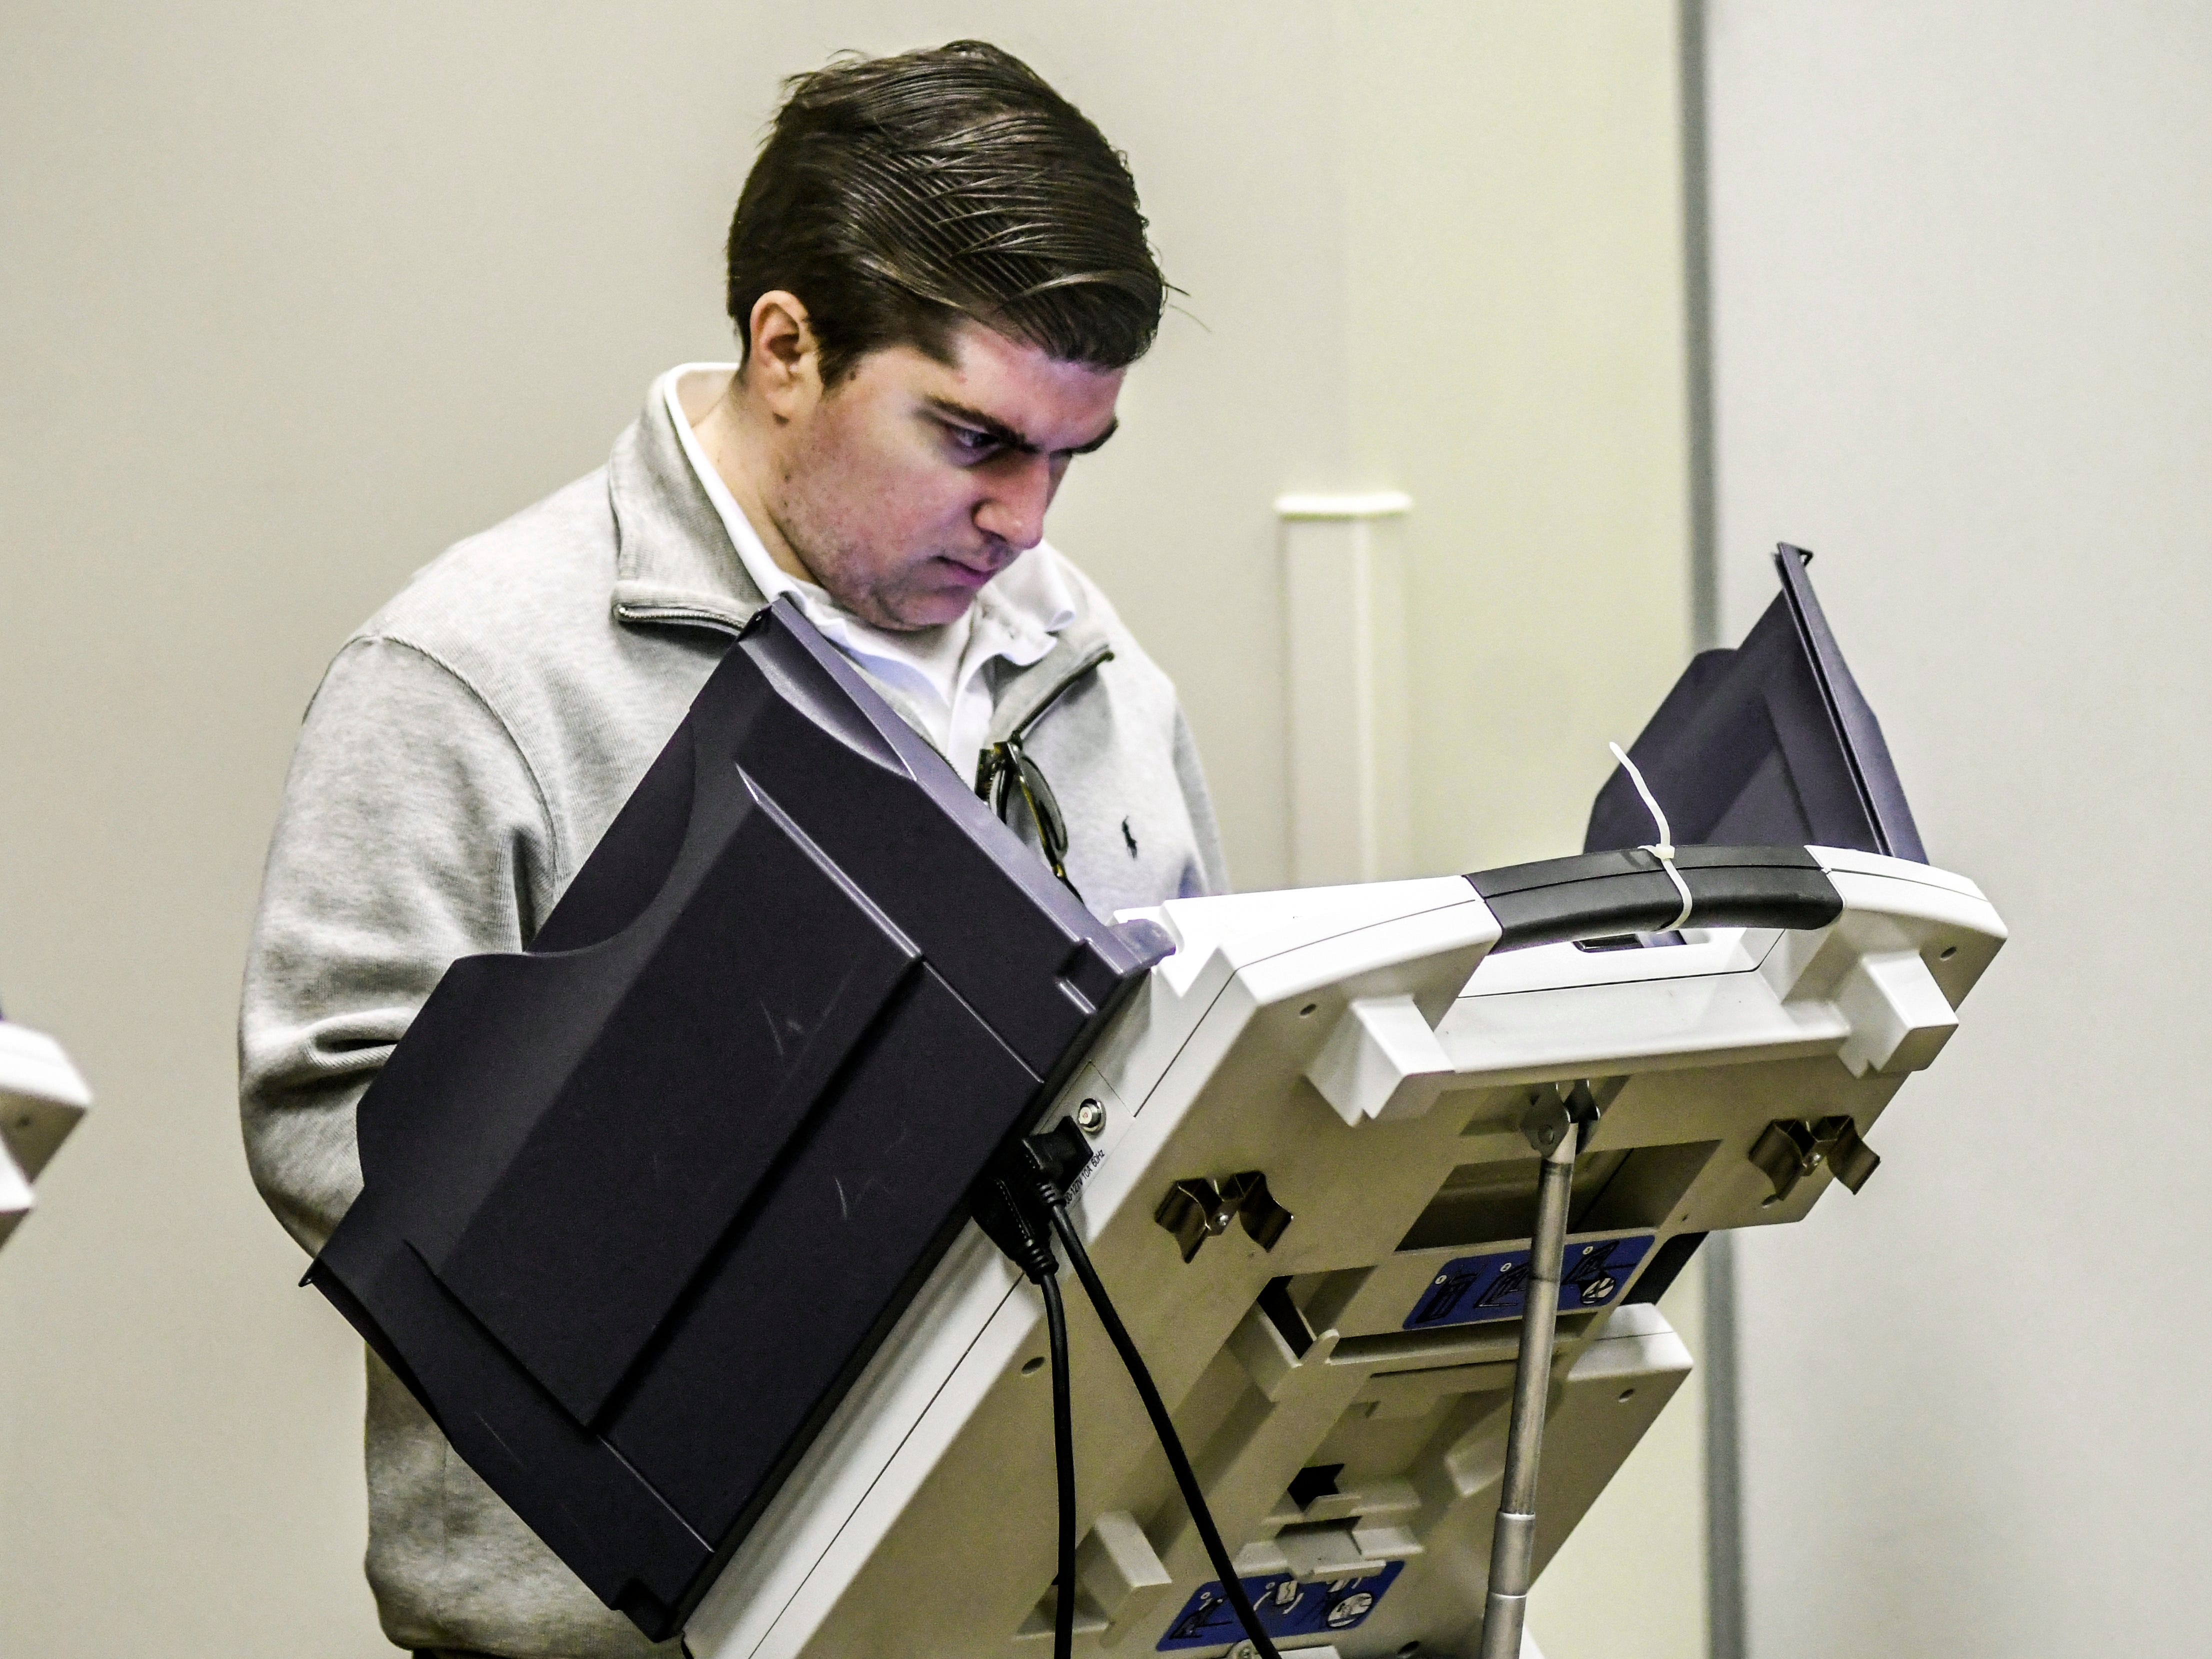 Graham Doty votes at the polls in a runoff election at the Oxford Conference Center in Oxford, Miss. on Tuesday, Nov. 27, 2018. Mississippi voters are deciding the last U.S. Senate race of the midterms, choosing between Espy and Republican Sen. Cindy Hyde-Smith.